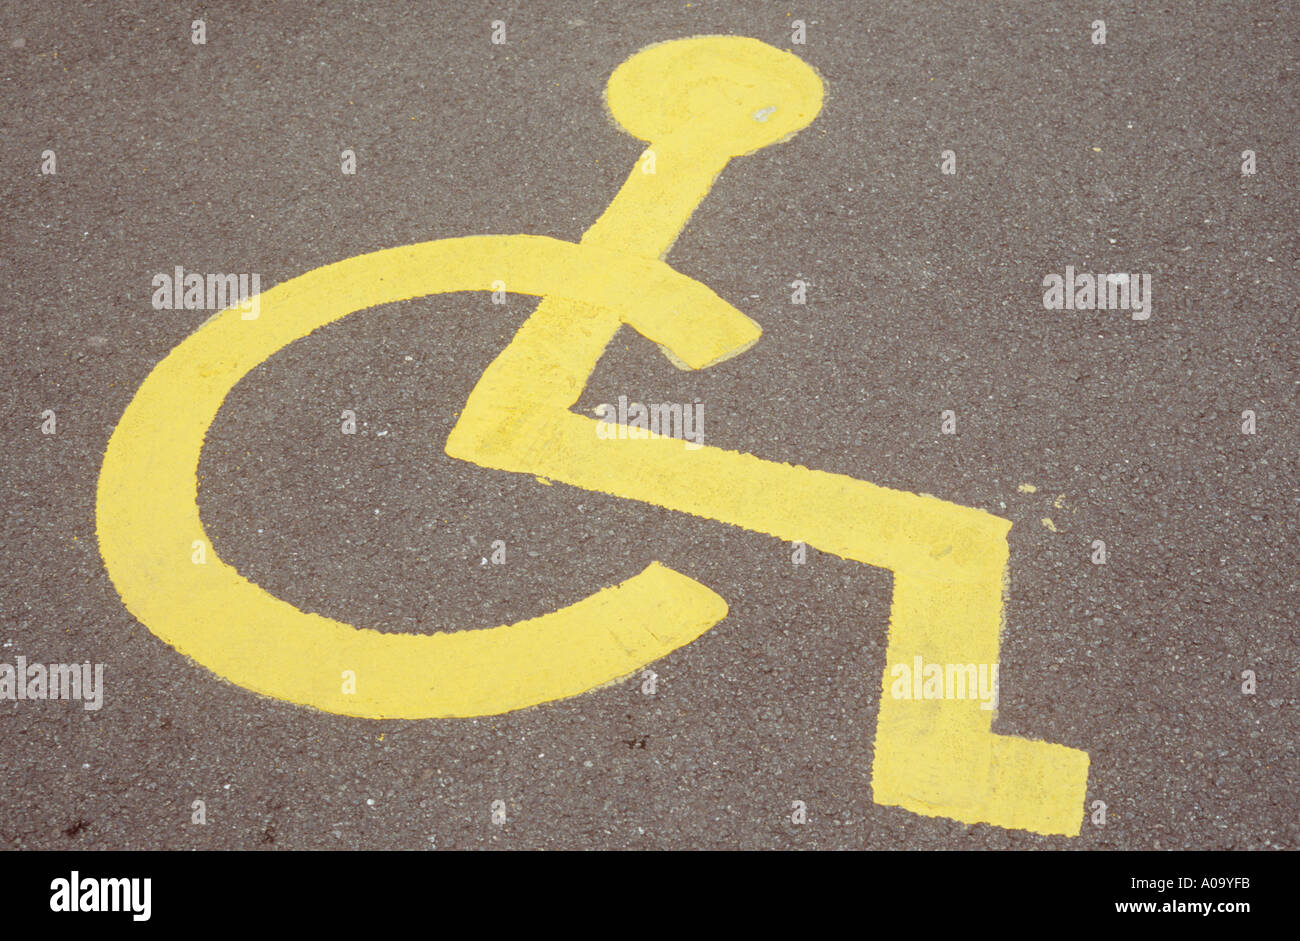 Symbol Of Person In Wheelchair Painted In Yellow On Road Or Carpark